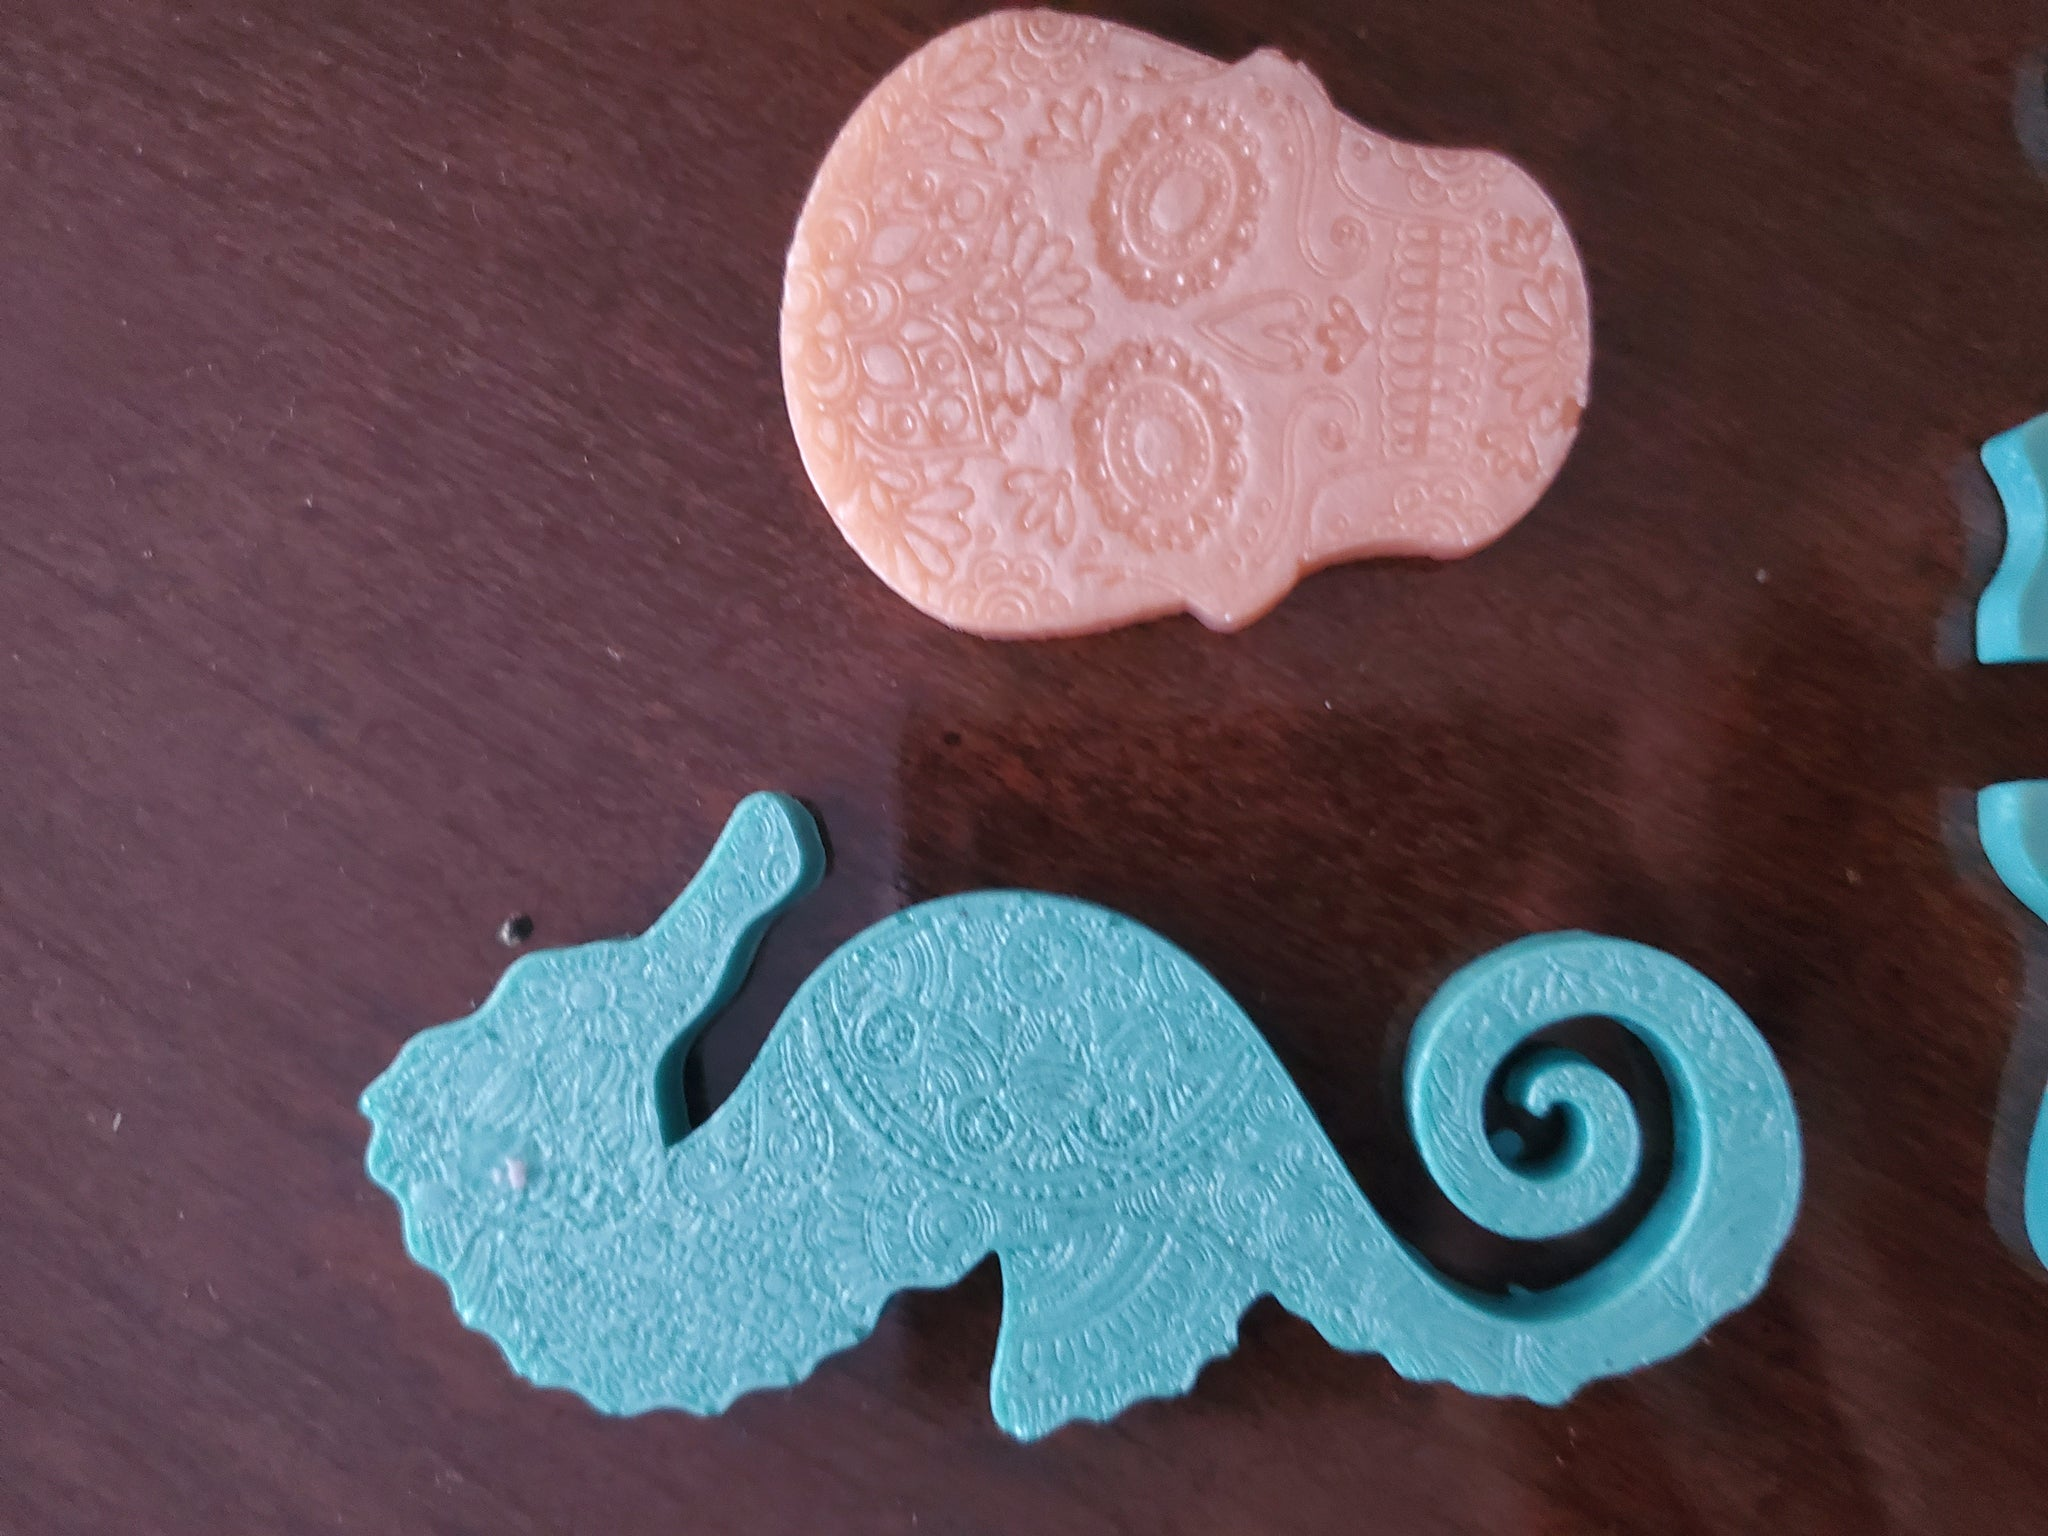 Handmade 8 piece Cotton Candy Swirl Coasters, Bookmarks, Decoration Set